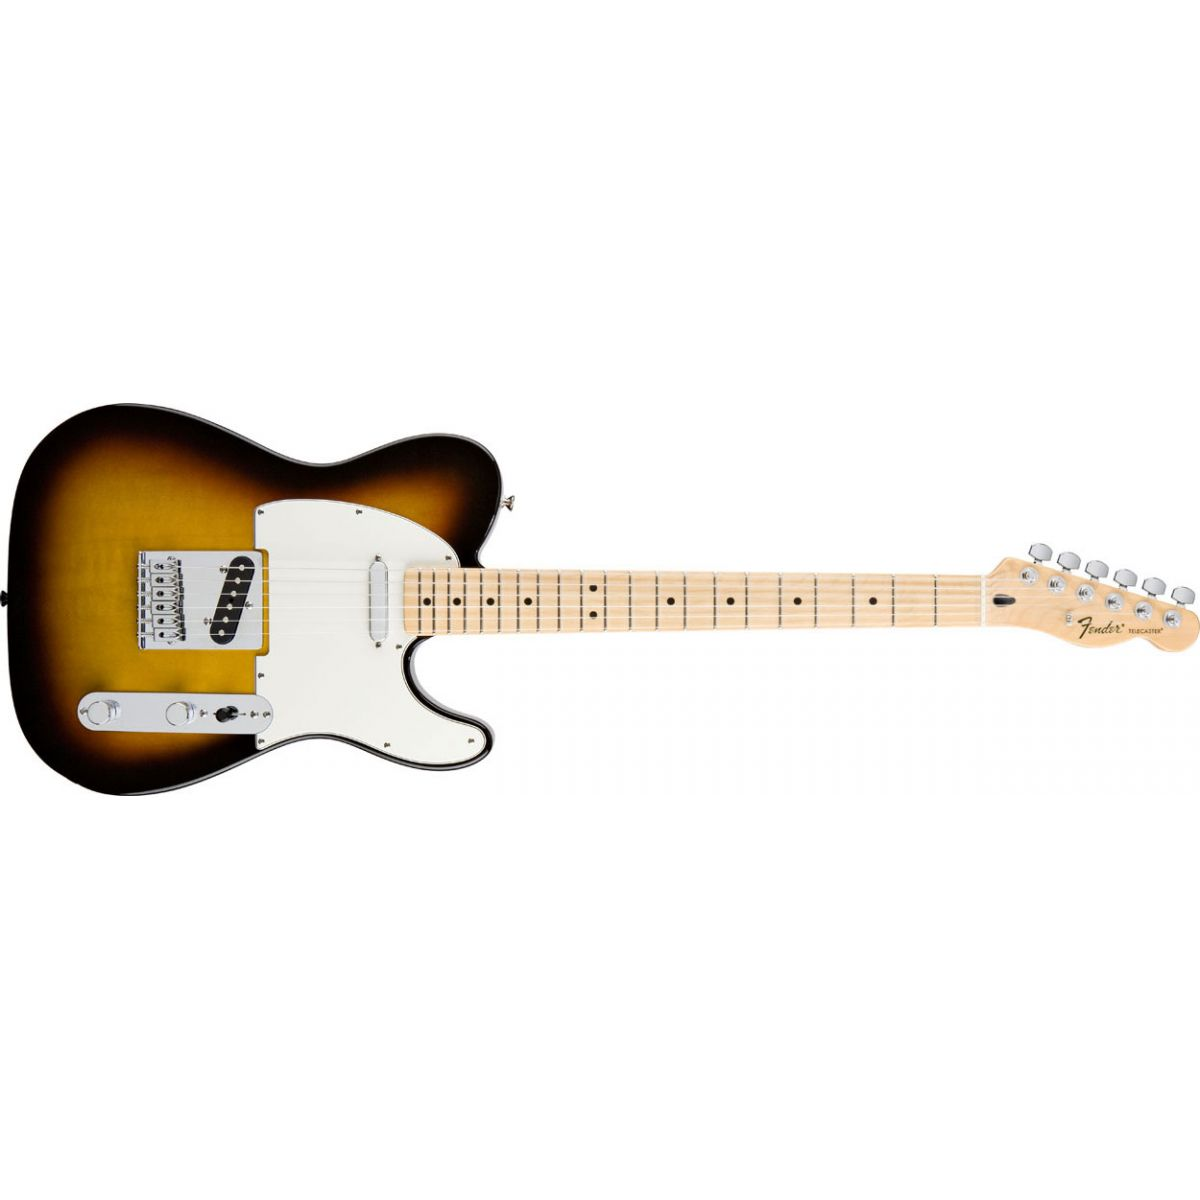 GUITARRA FENDER STANDARD TELECASTER BROWN SUNBURST